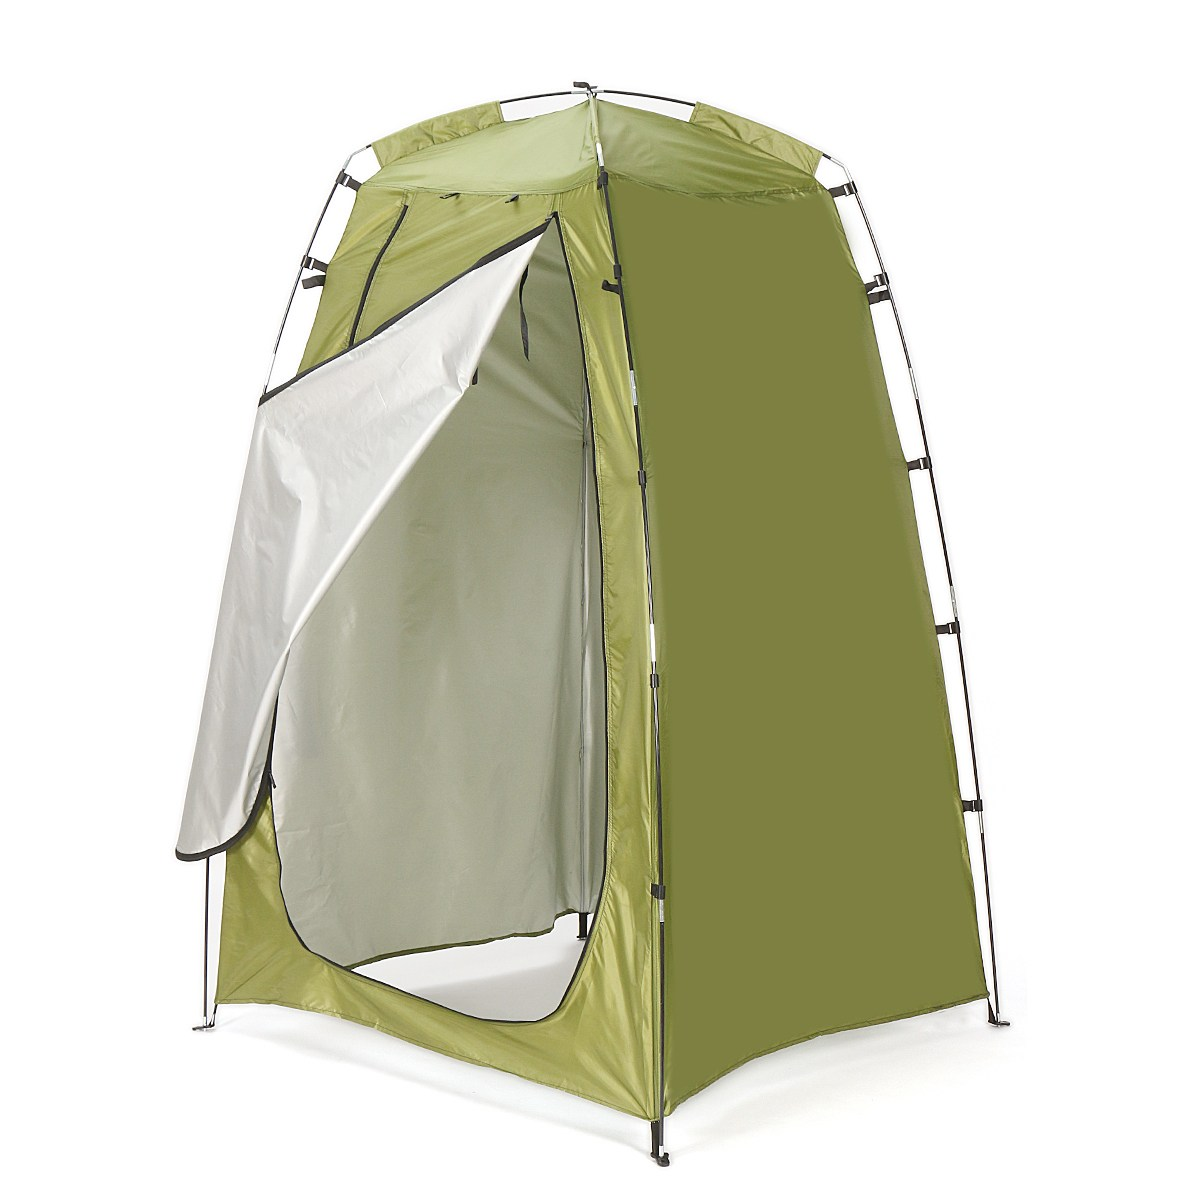 Portable Privacy Shower Toilet Tent 1.2x1.2x1.8m Camping tents Outdoor Waterproof Change BathRoom Sun Shelter Pop Up Tent